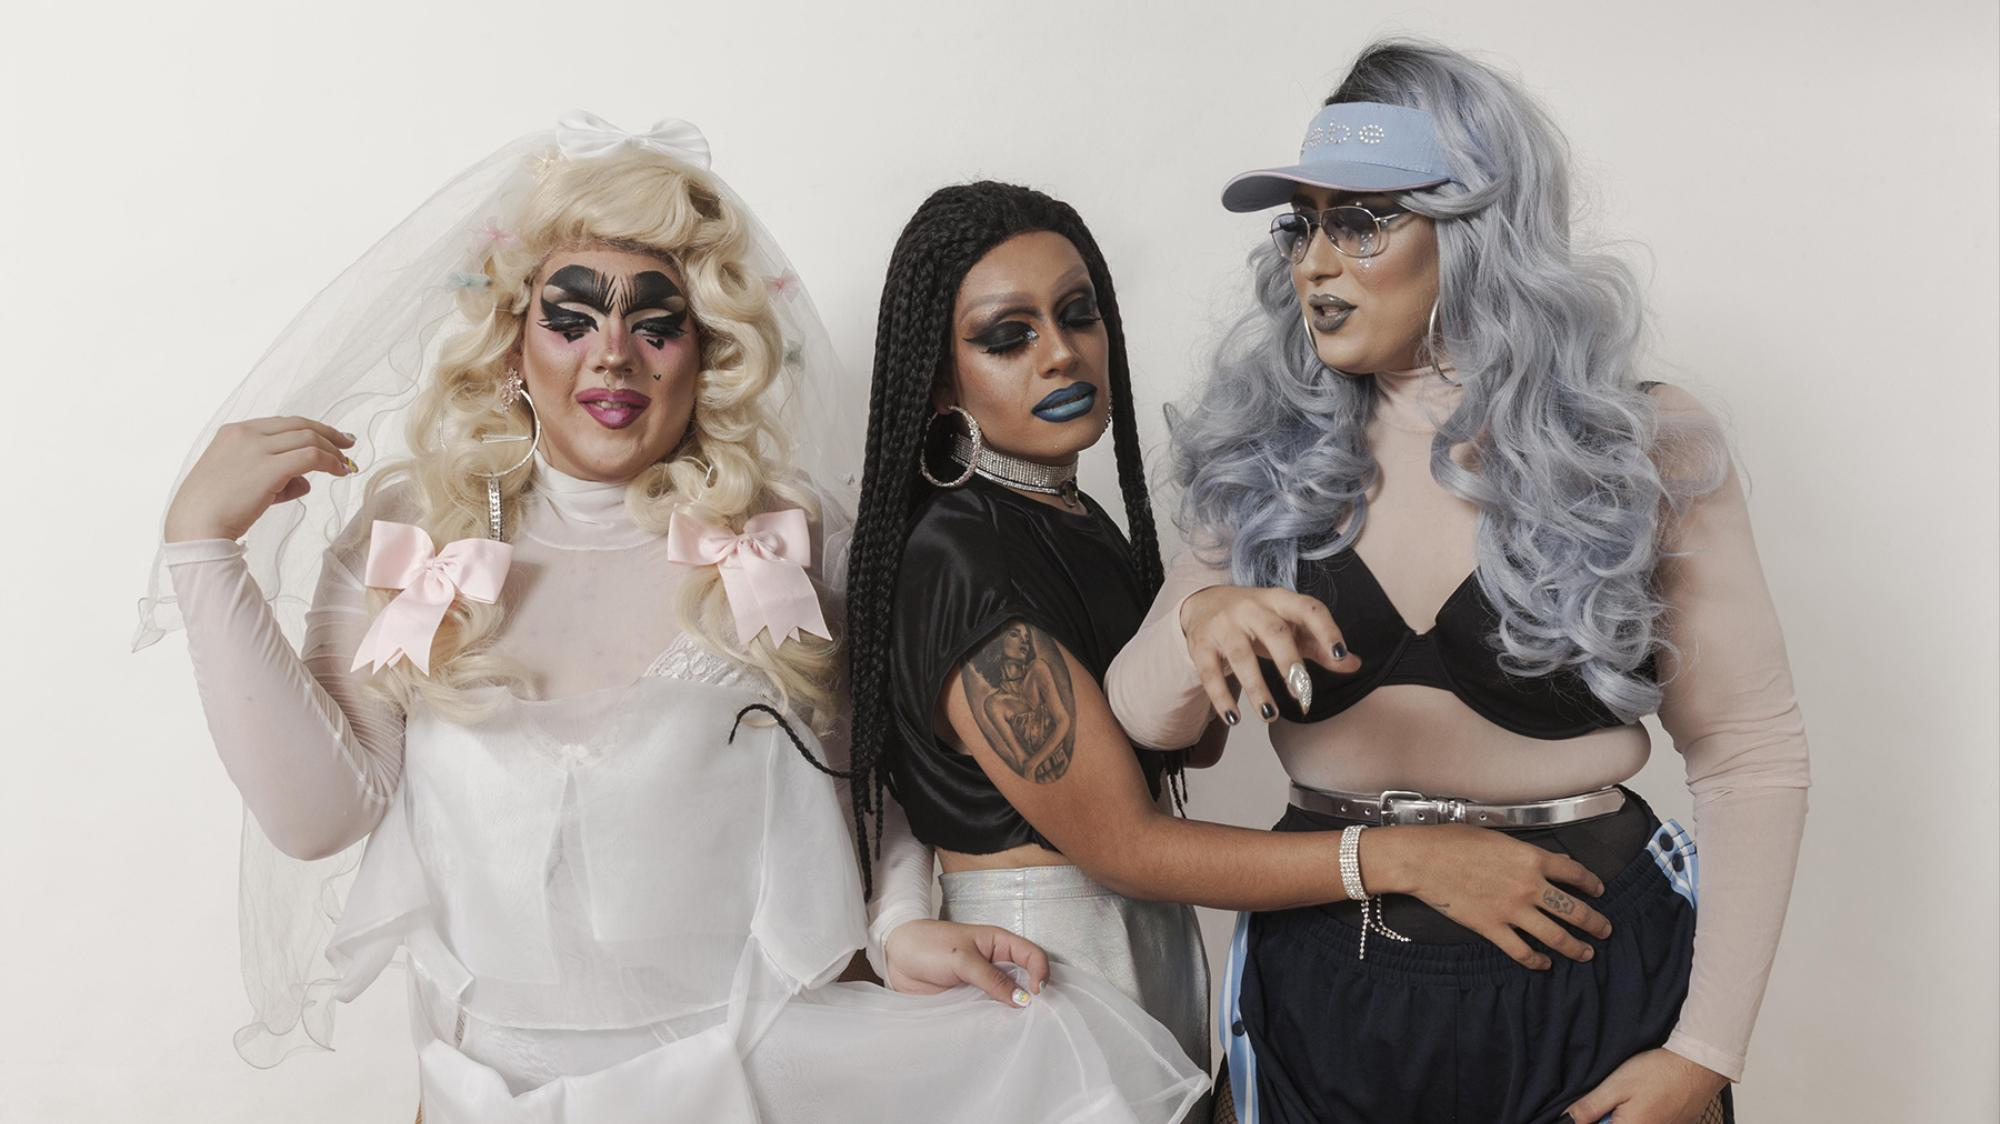 mexico city's young drag queens talk class, sass, and sisterhood